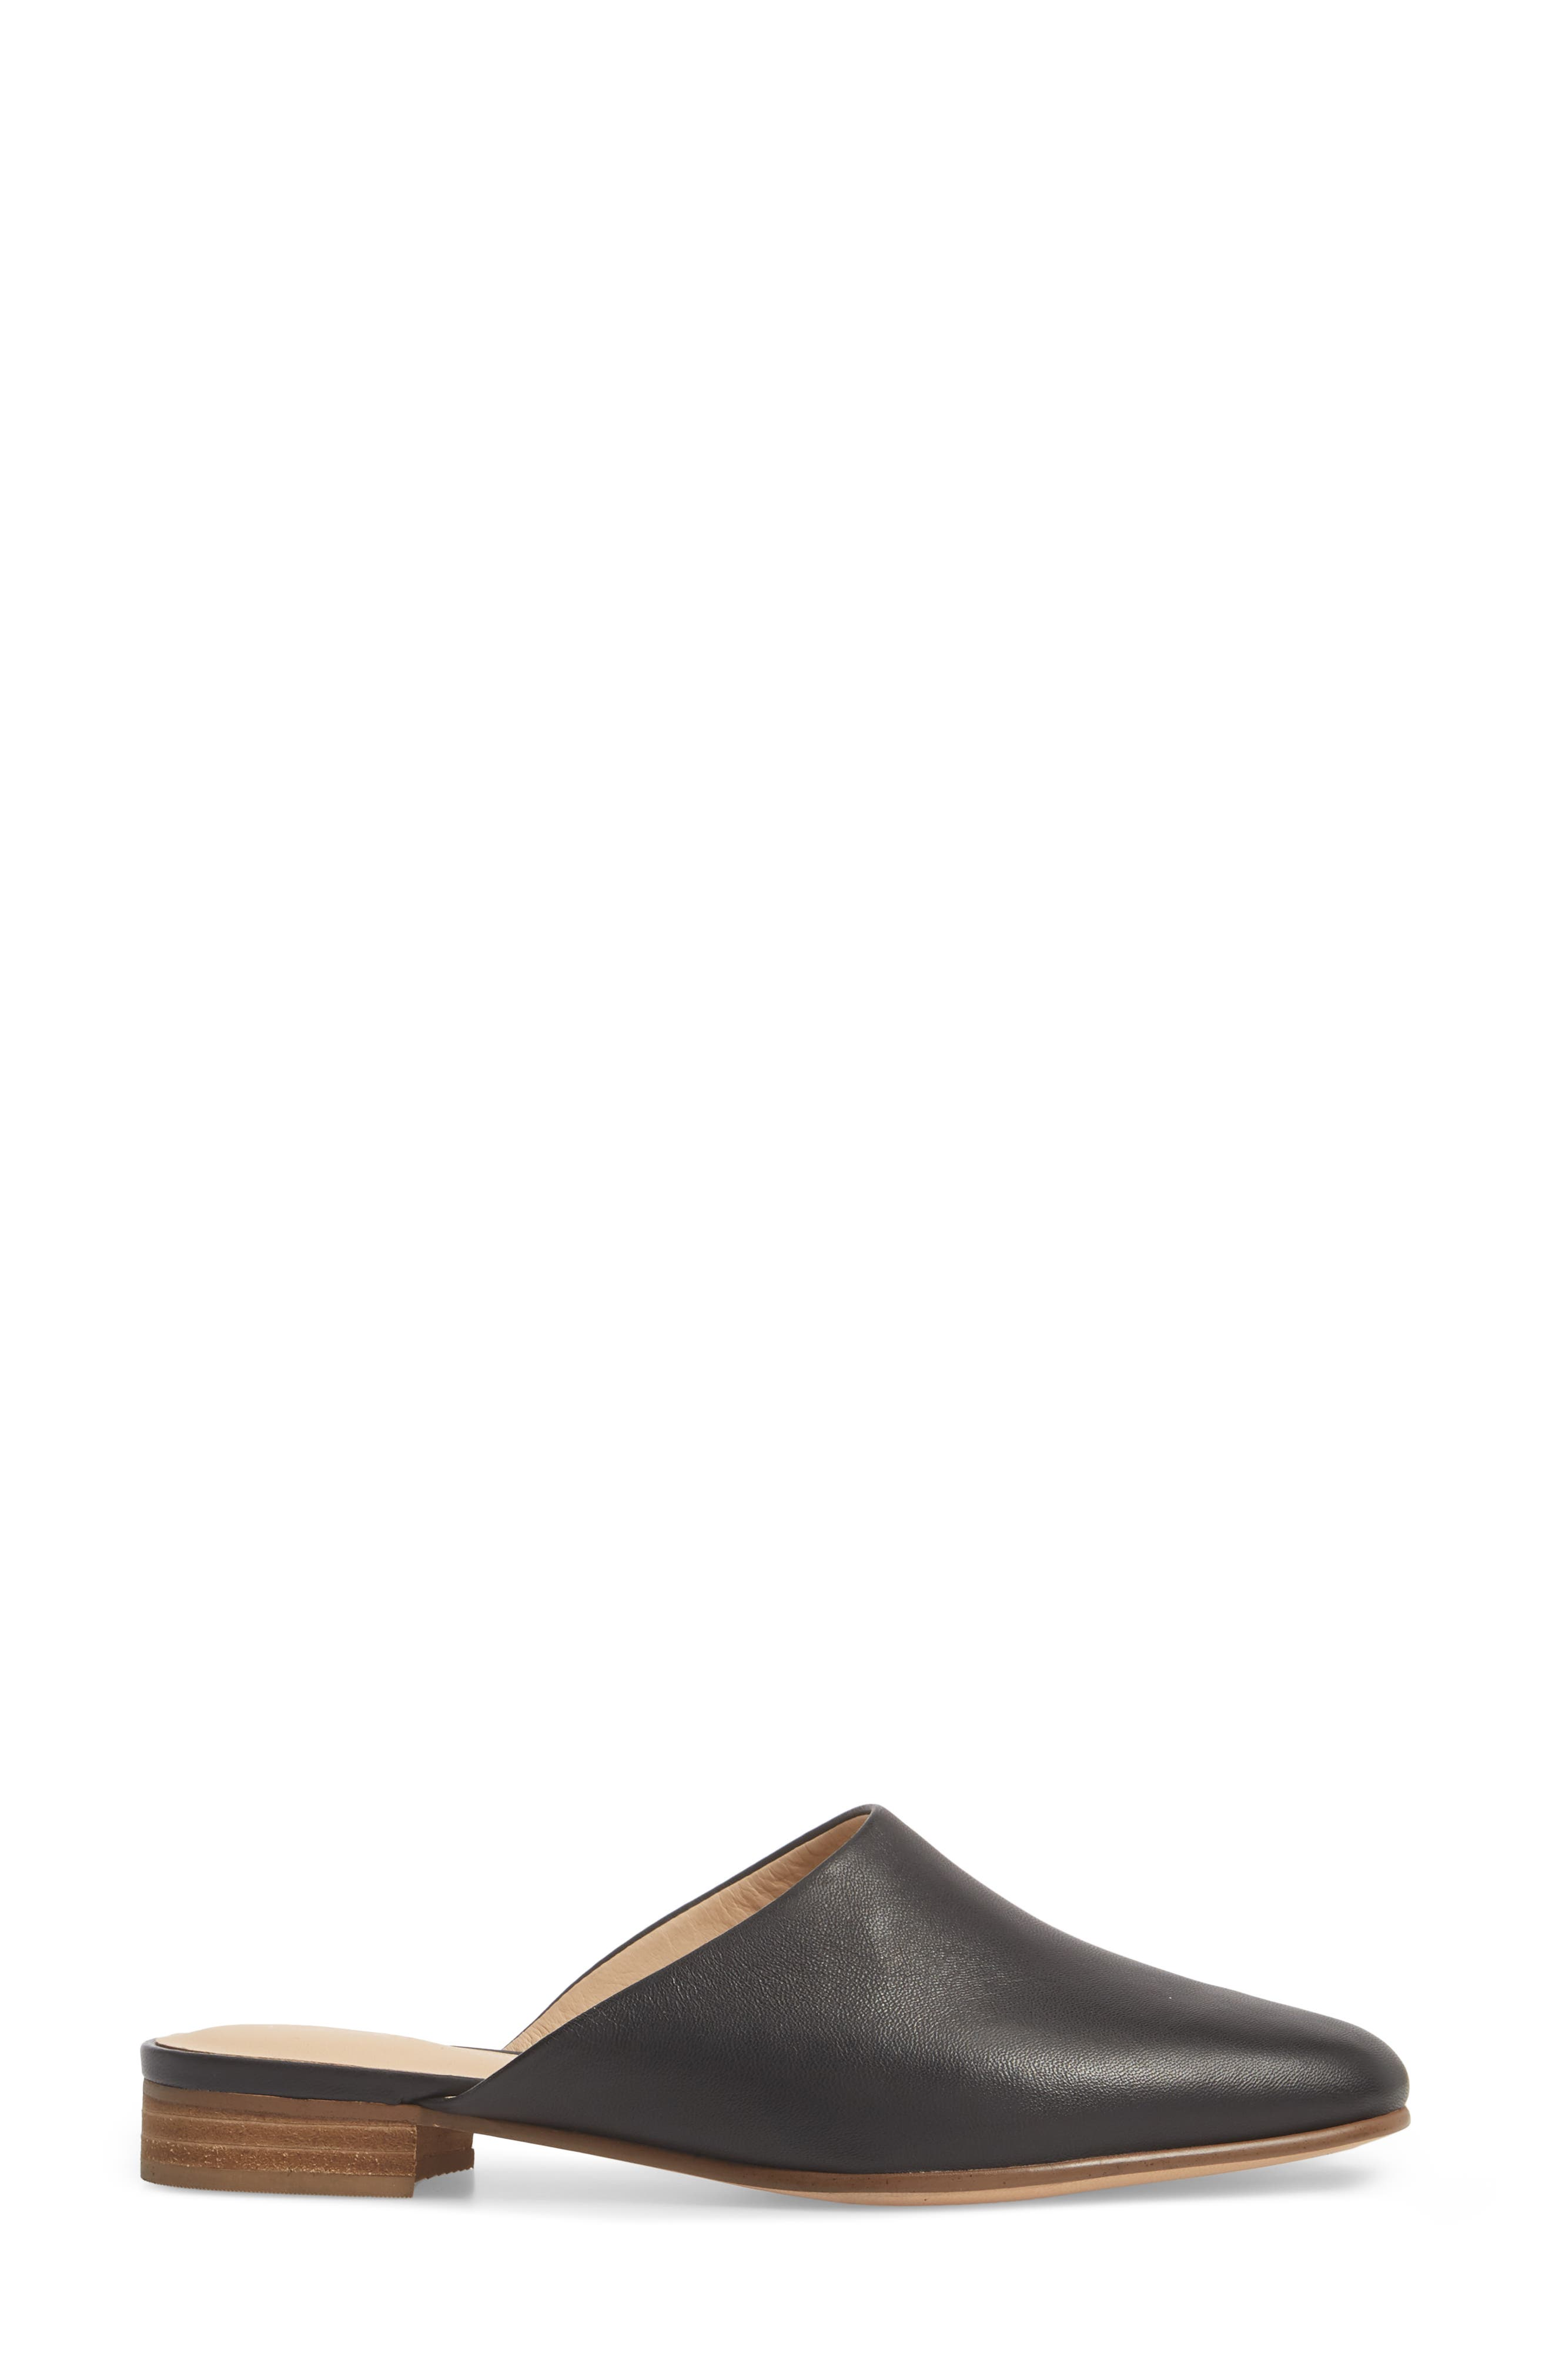 CLARKS<SUP>®</SUP>, Pure Blush Mule, Alternate thumbnail 3, color, BLACK LEATHER